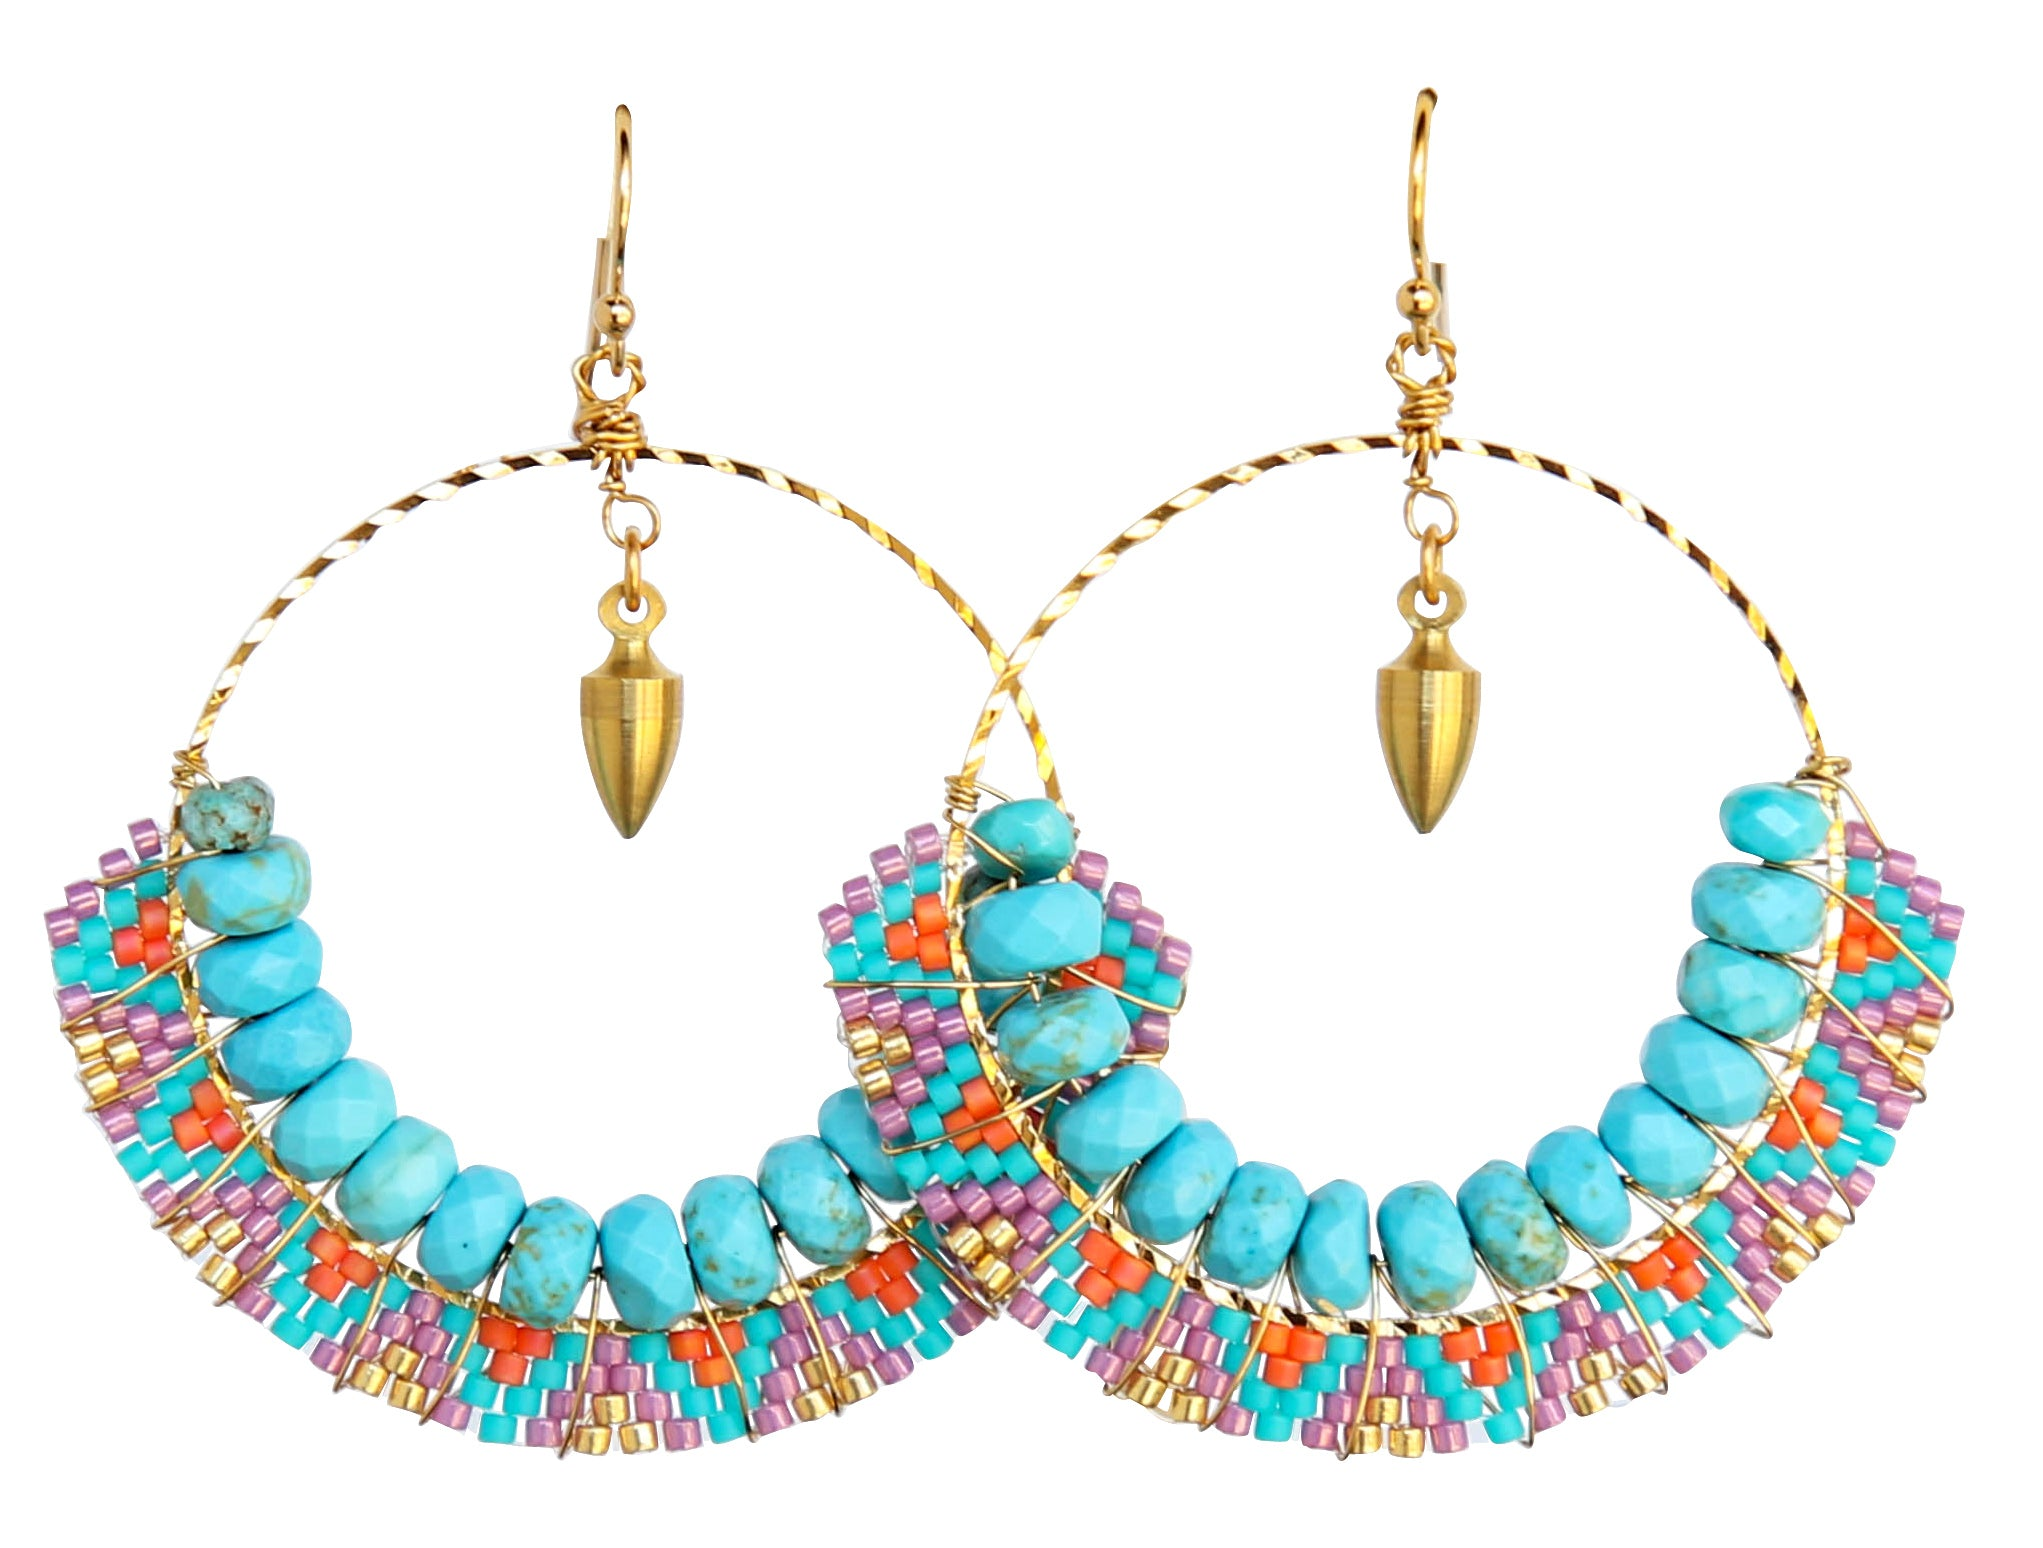 Juhla Earrings